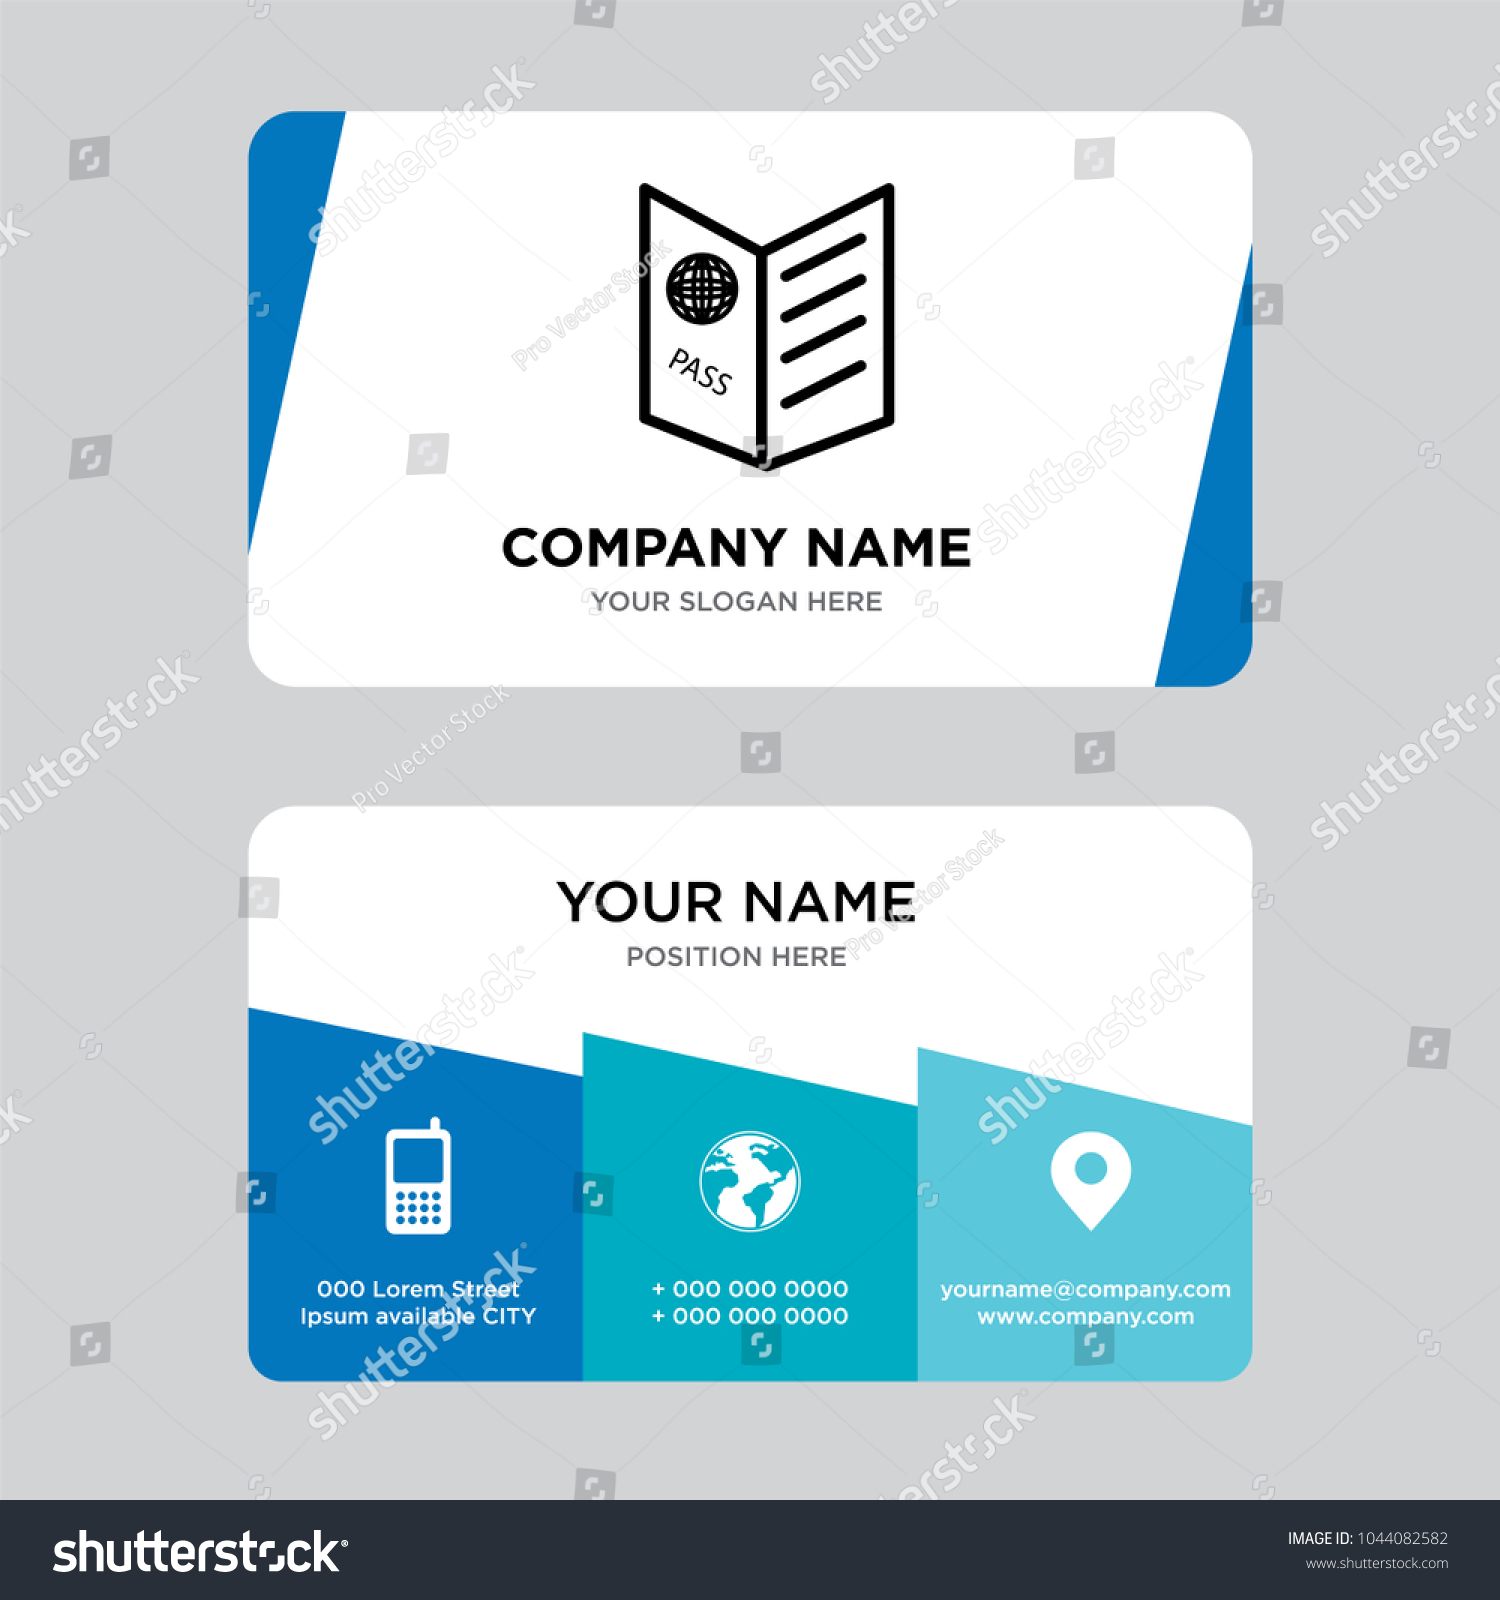 Passport Visa Business Card Design Template Stock Photo (Photo ...